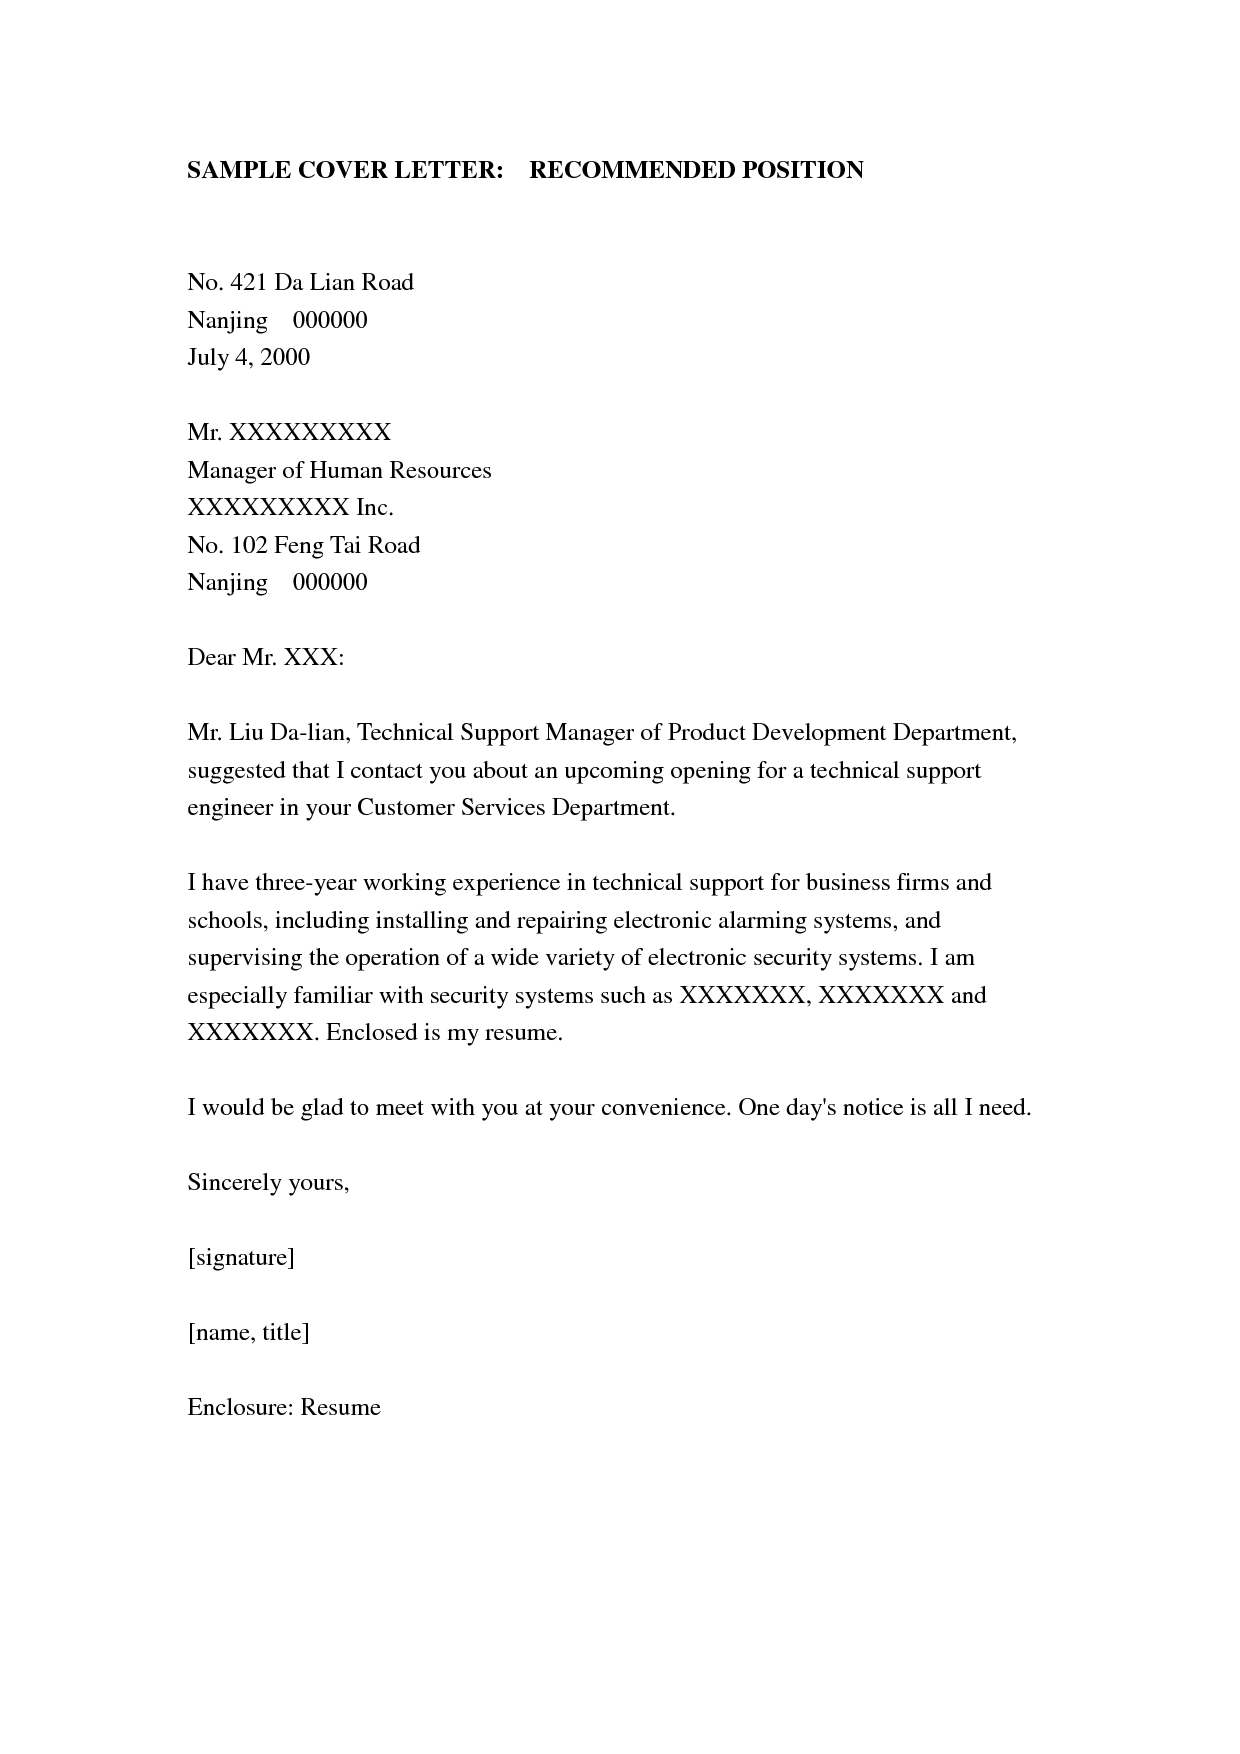 example cover letter for job resume httpwwwresumecareerinfo - Example Of An Cover Letter For A Job